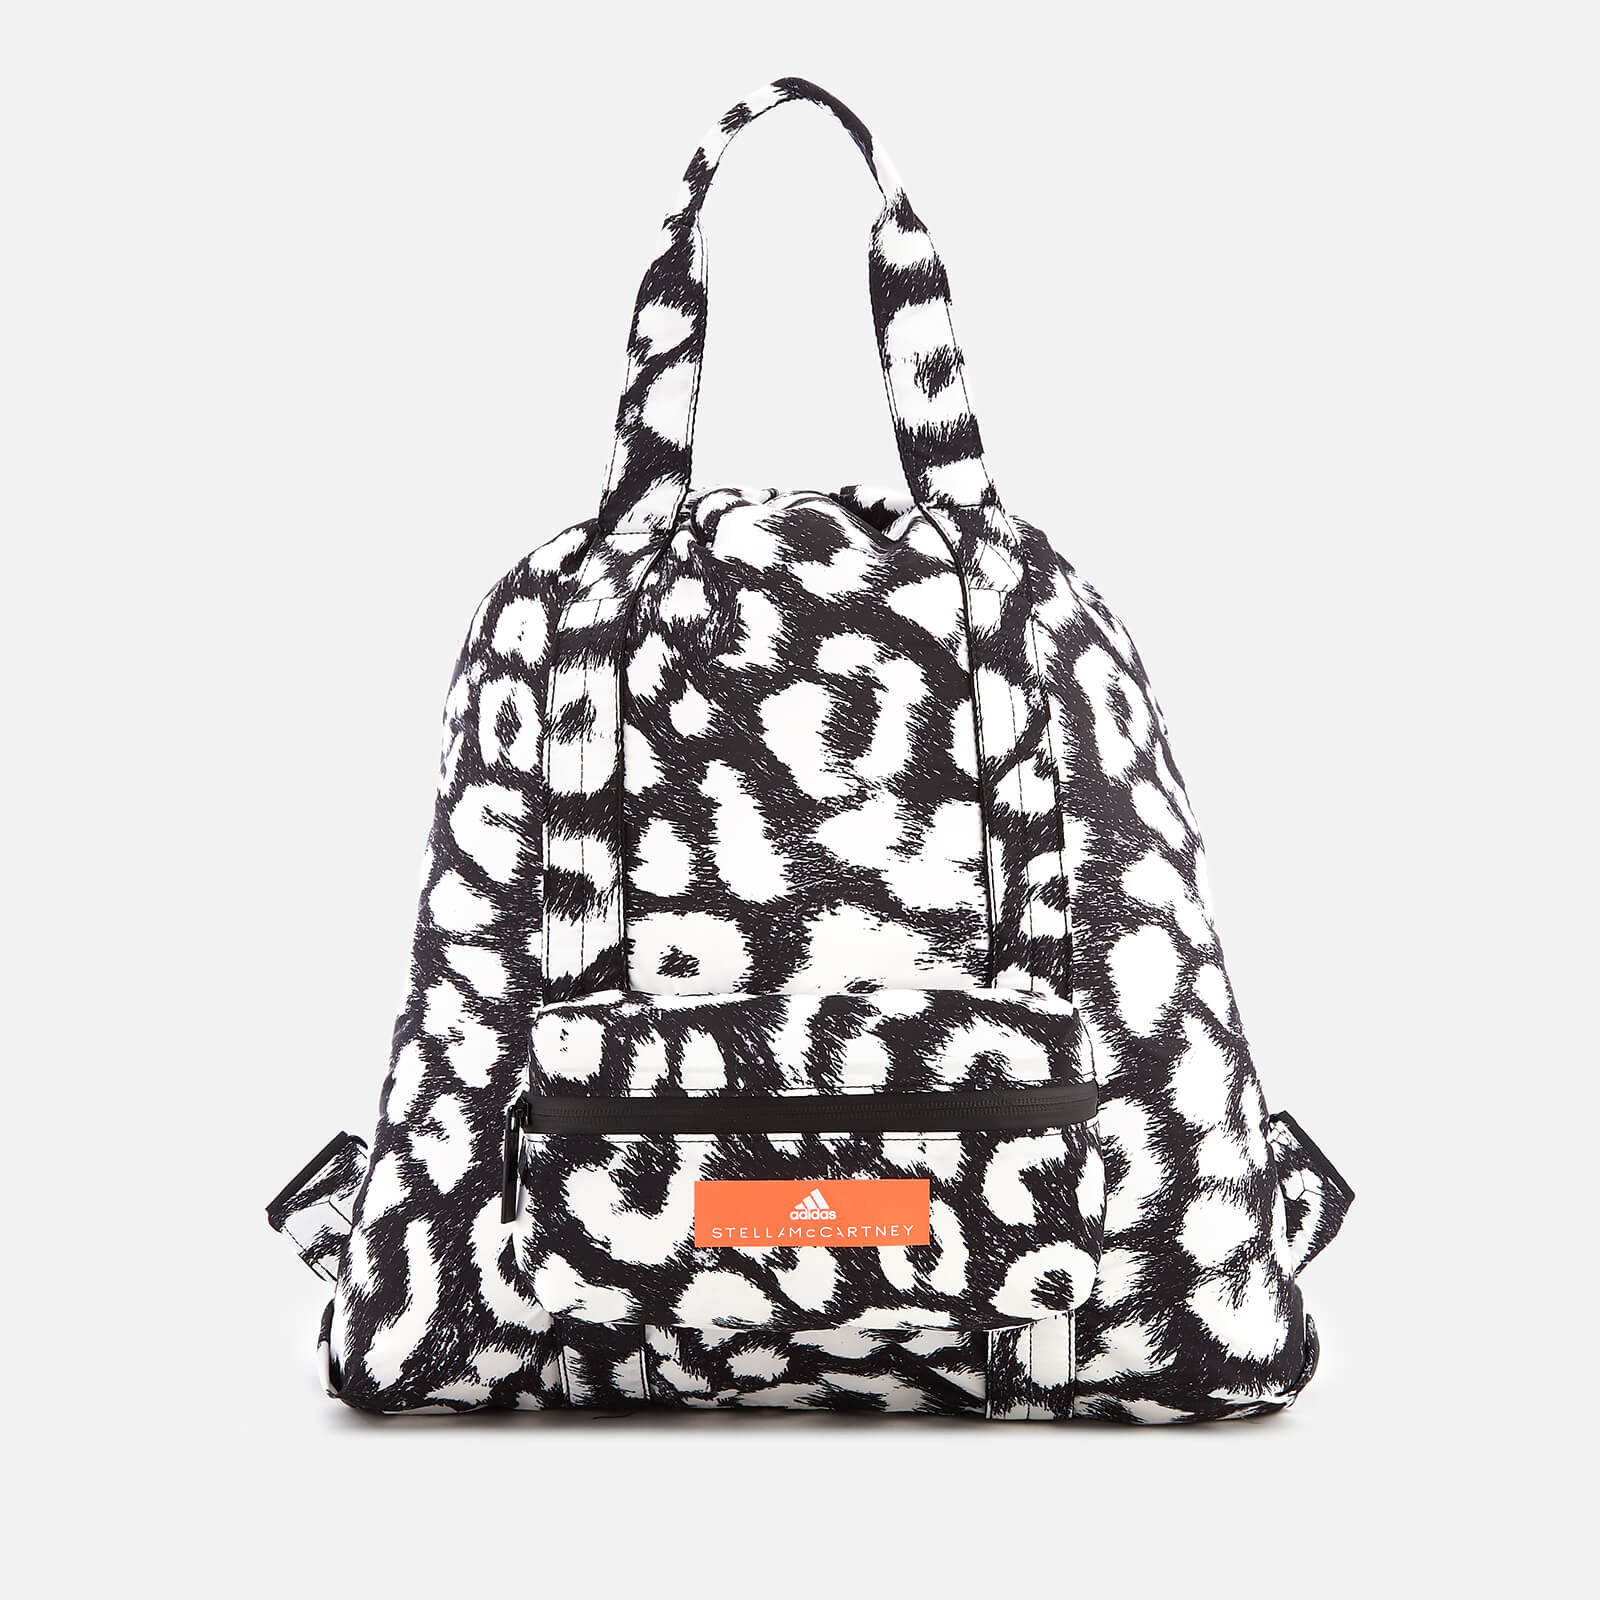 dd2623ec92793 adidas by Stella McCartney Women s Gym Sack Bag - Black White - Free UK  Delivery over £50